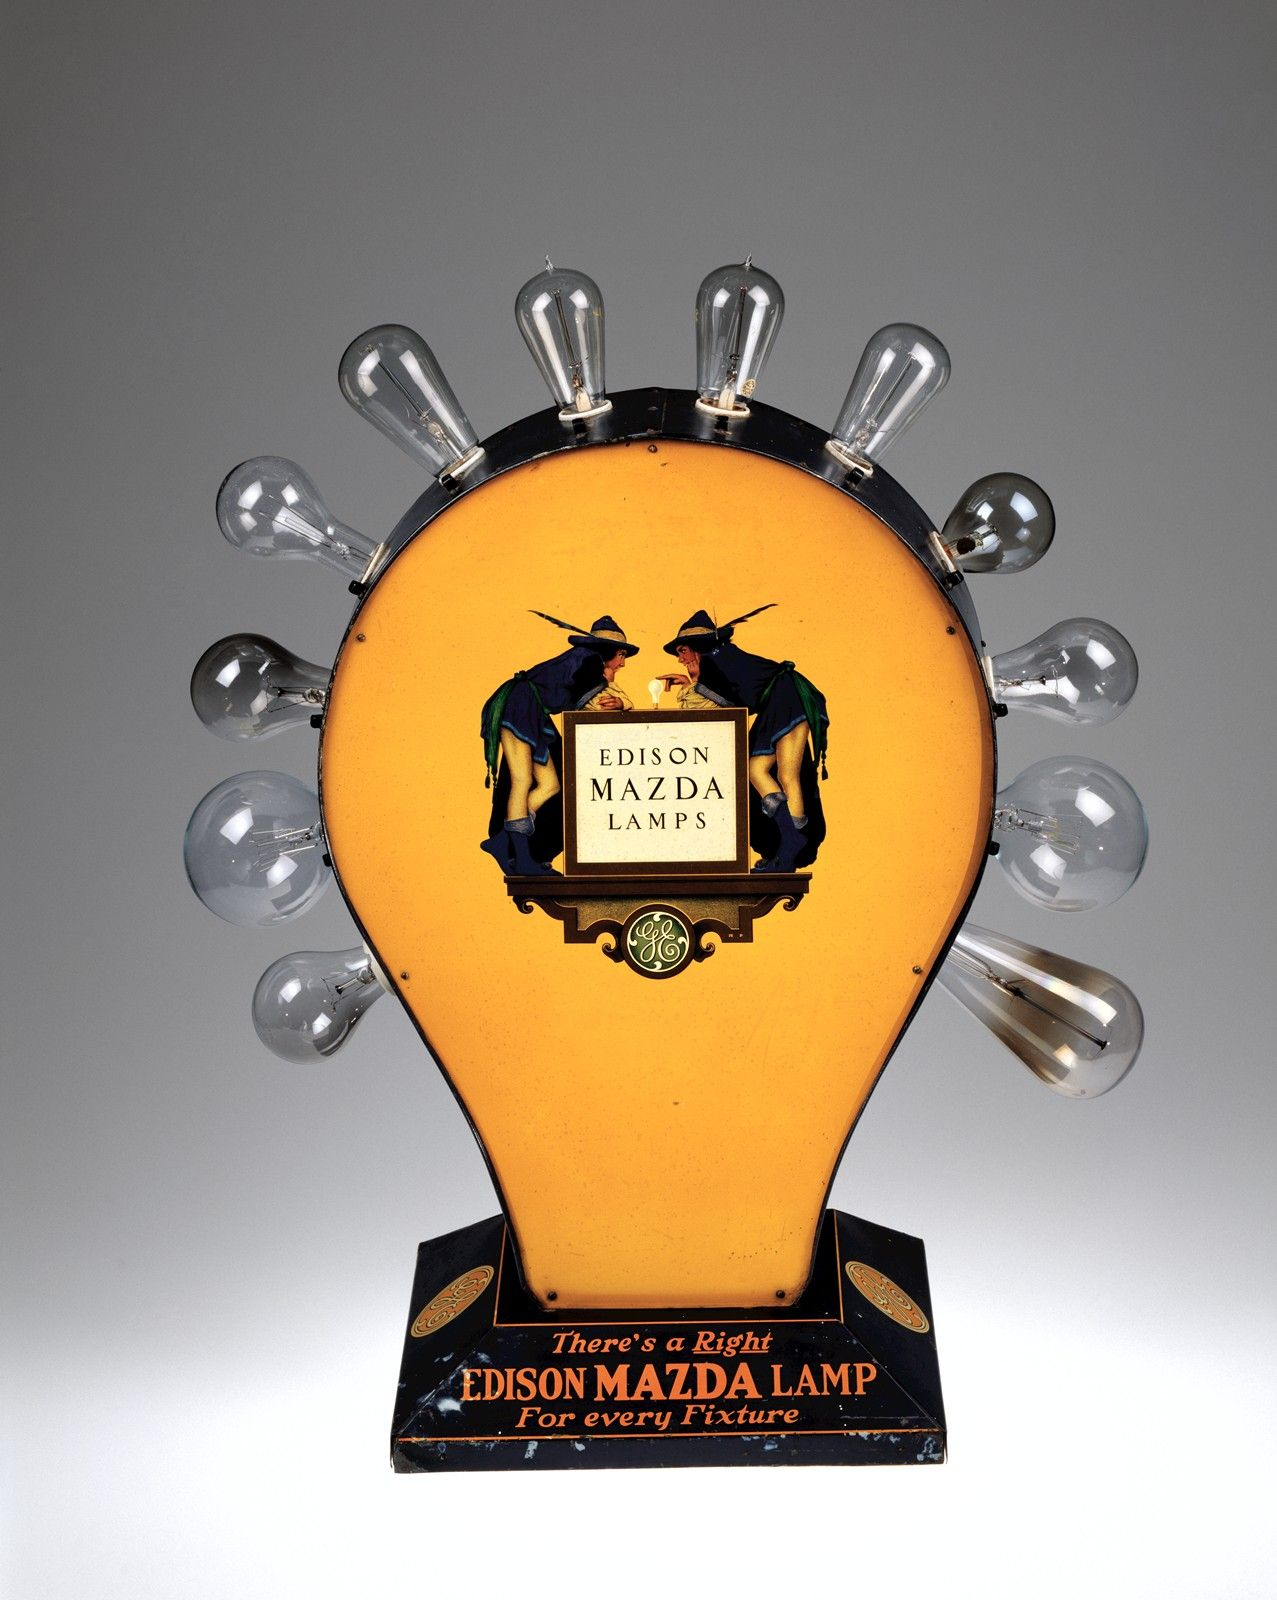 Light Bulb Tester Designed By American Art Works Inc In Coshocton